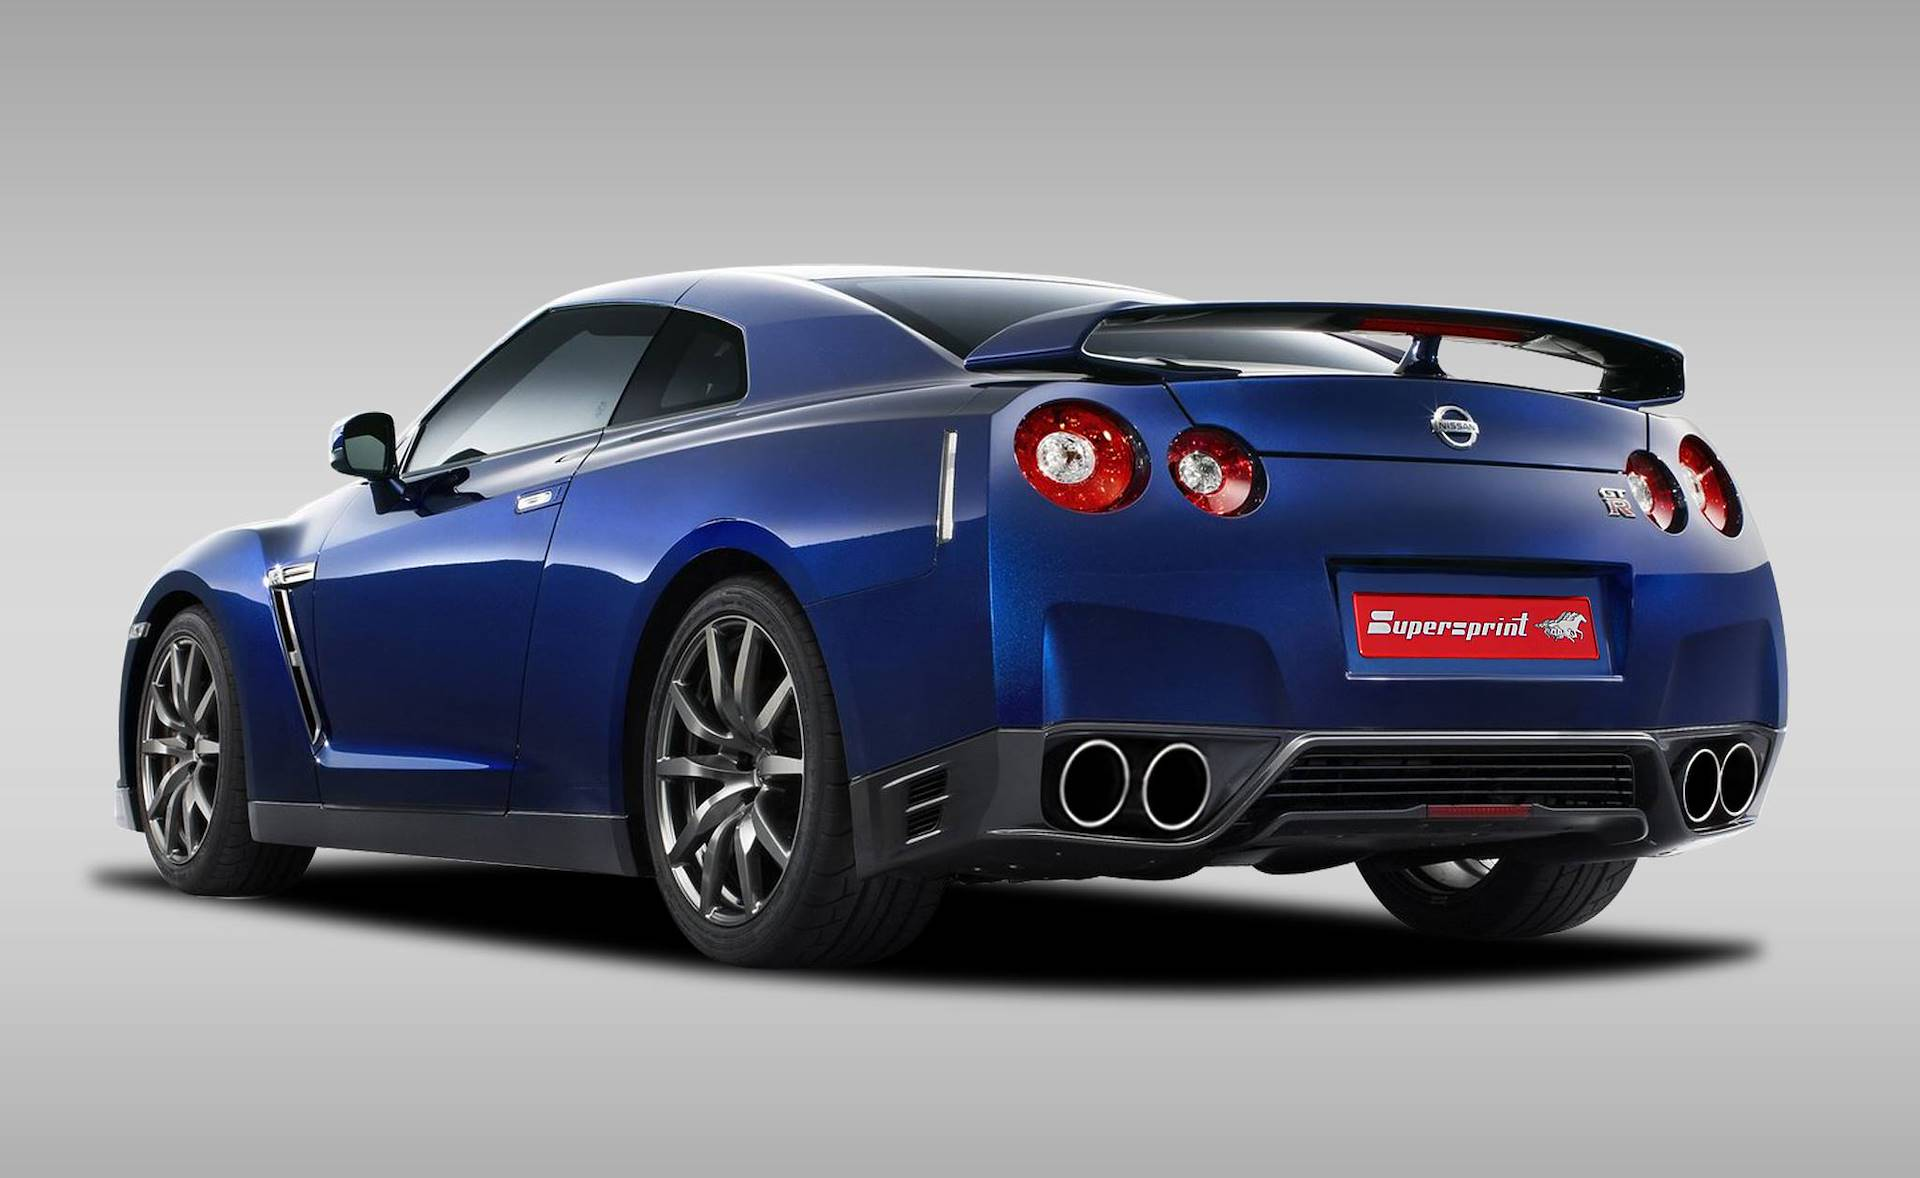 Supersprint Exhaust for NISSAN GT-R 3.8 V6 Bi-Turbo (530 Hp) 2011 -> 2012